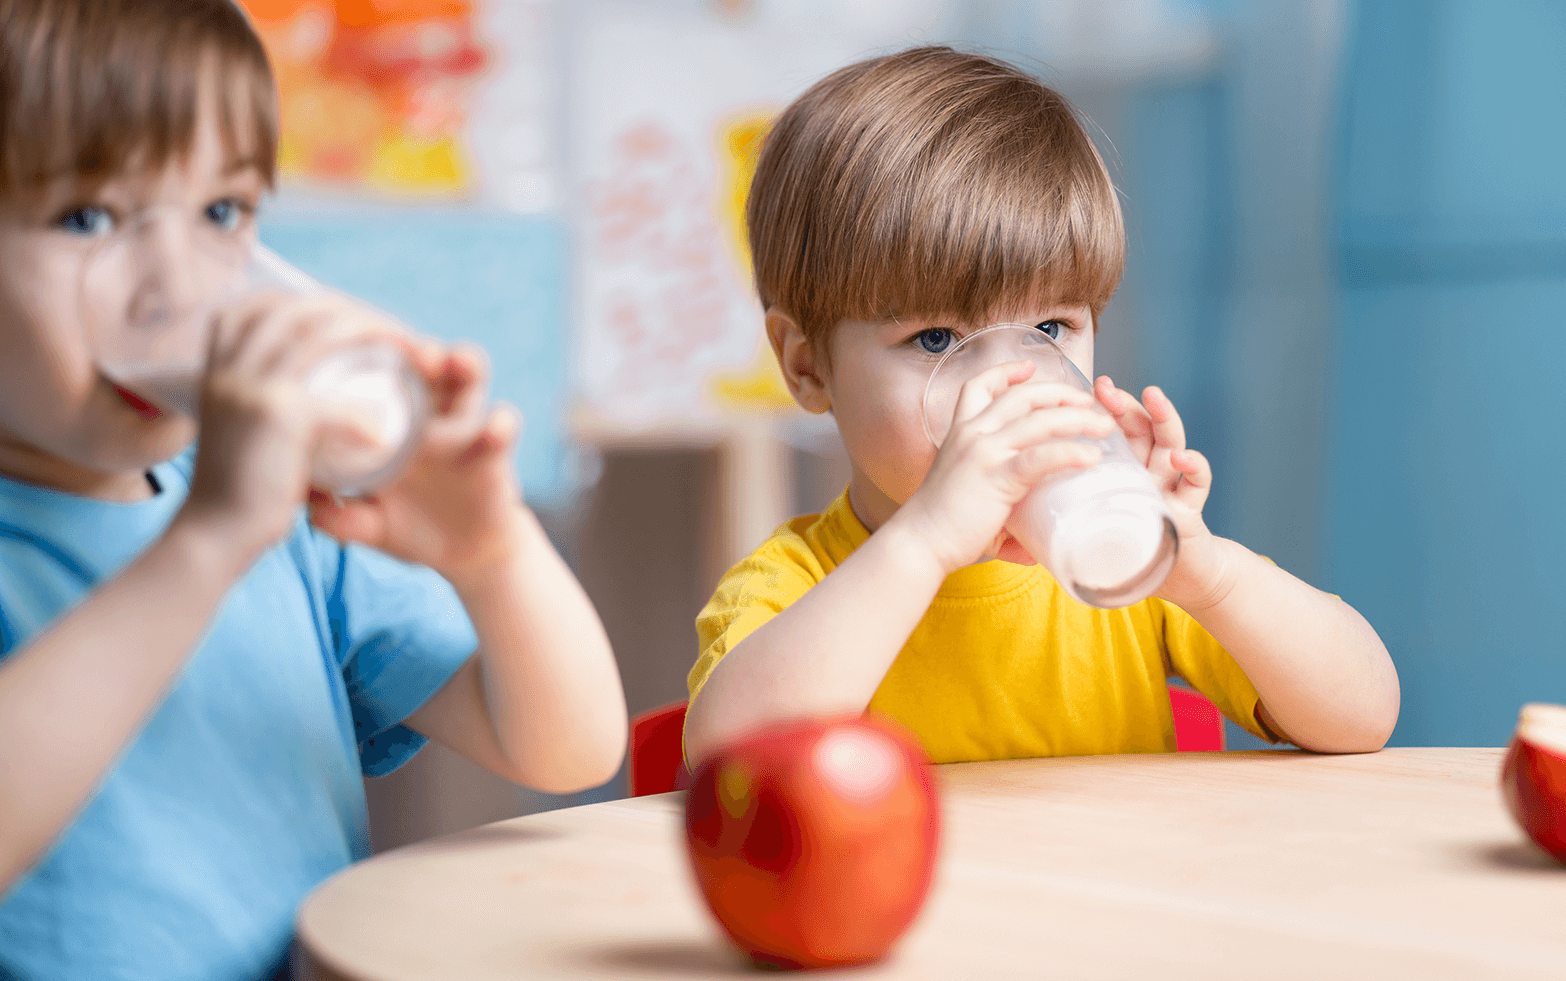 Two elementary school children drink milk from glasses